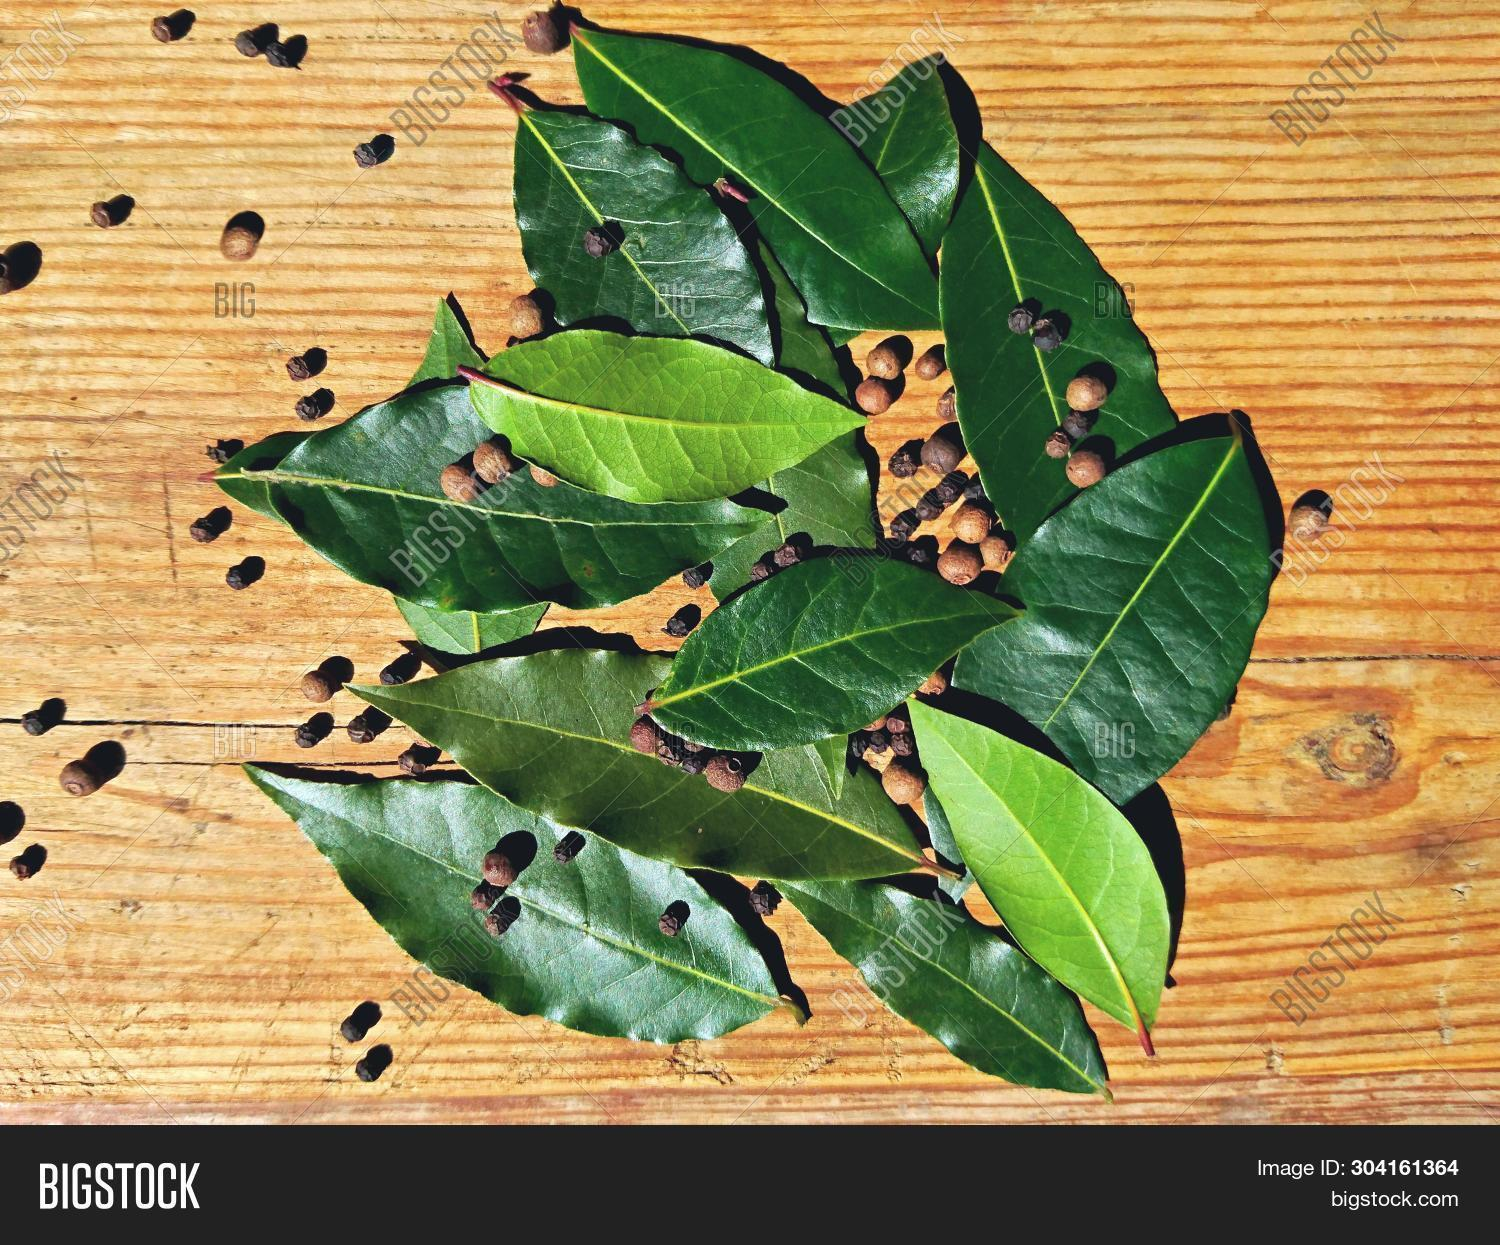 above,allspice,aromatic,background,bay,bayleaf,beautiful,board,brine,close,closeup,cooking,corn,dry,foliage,food,fresh,garden,green,growth,health,healthy,herb,indian,ingredient,kitchen,lauraceae,laurel,laurus,leaf,leaves,macro,natural,organic,overhead,pattern,pepper,peppercorn,pickle,plant,raw,spice,table,top,tree,up,view